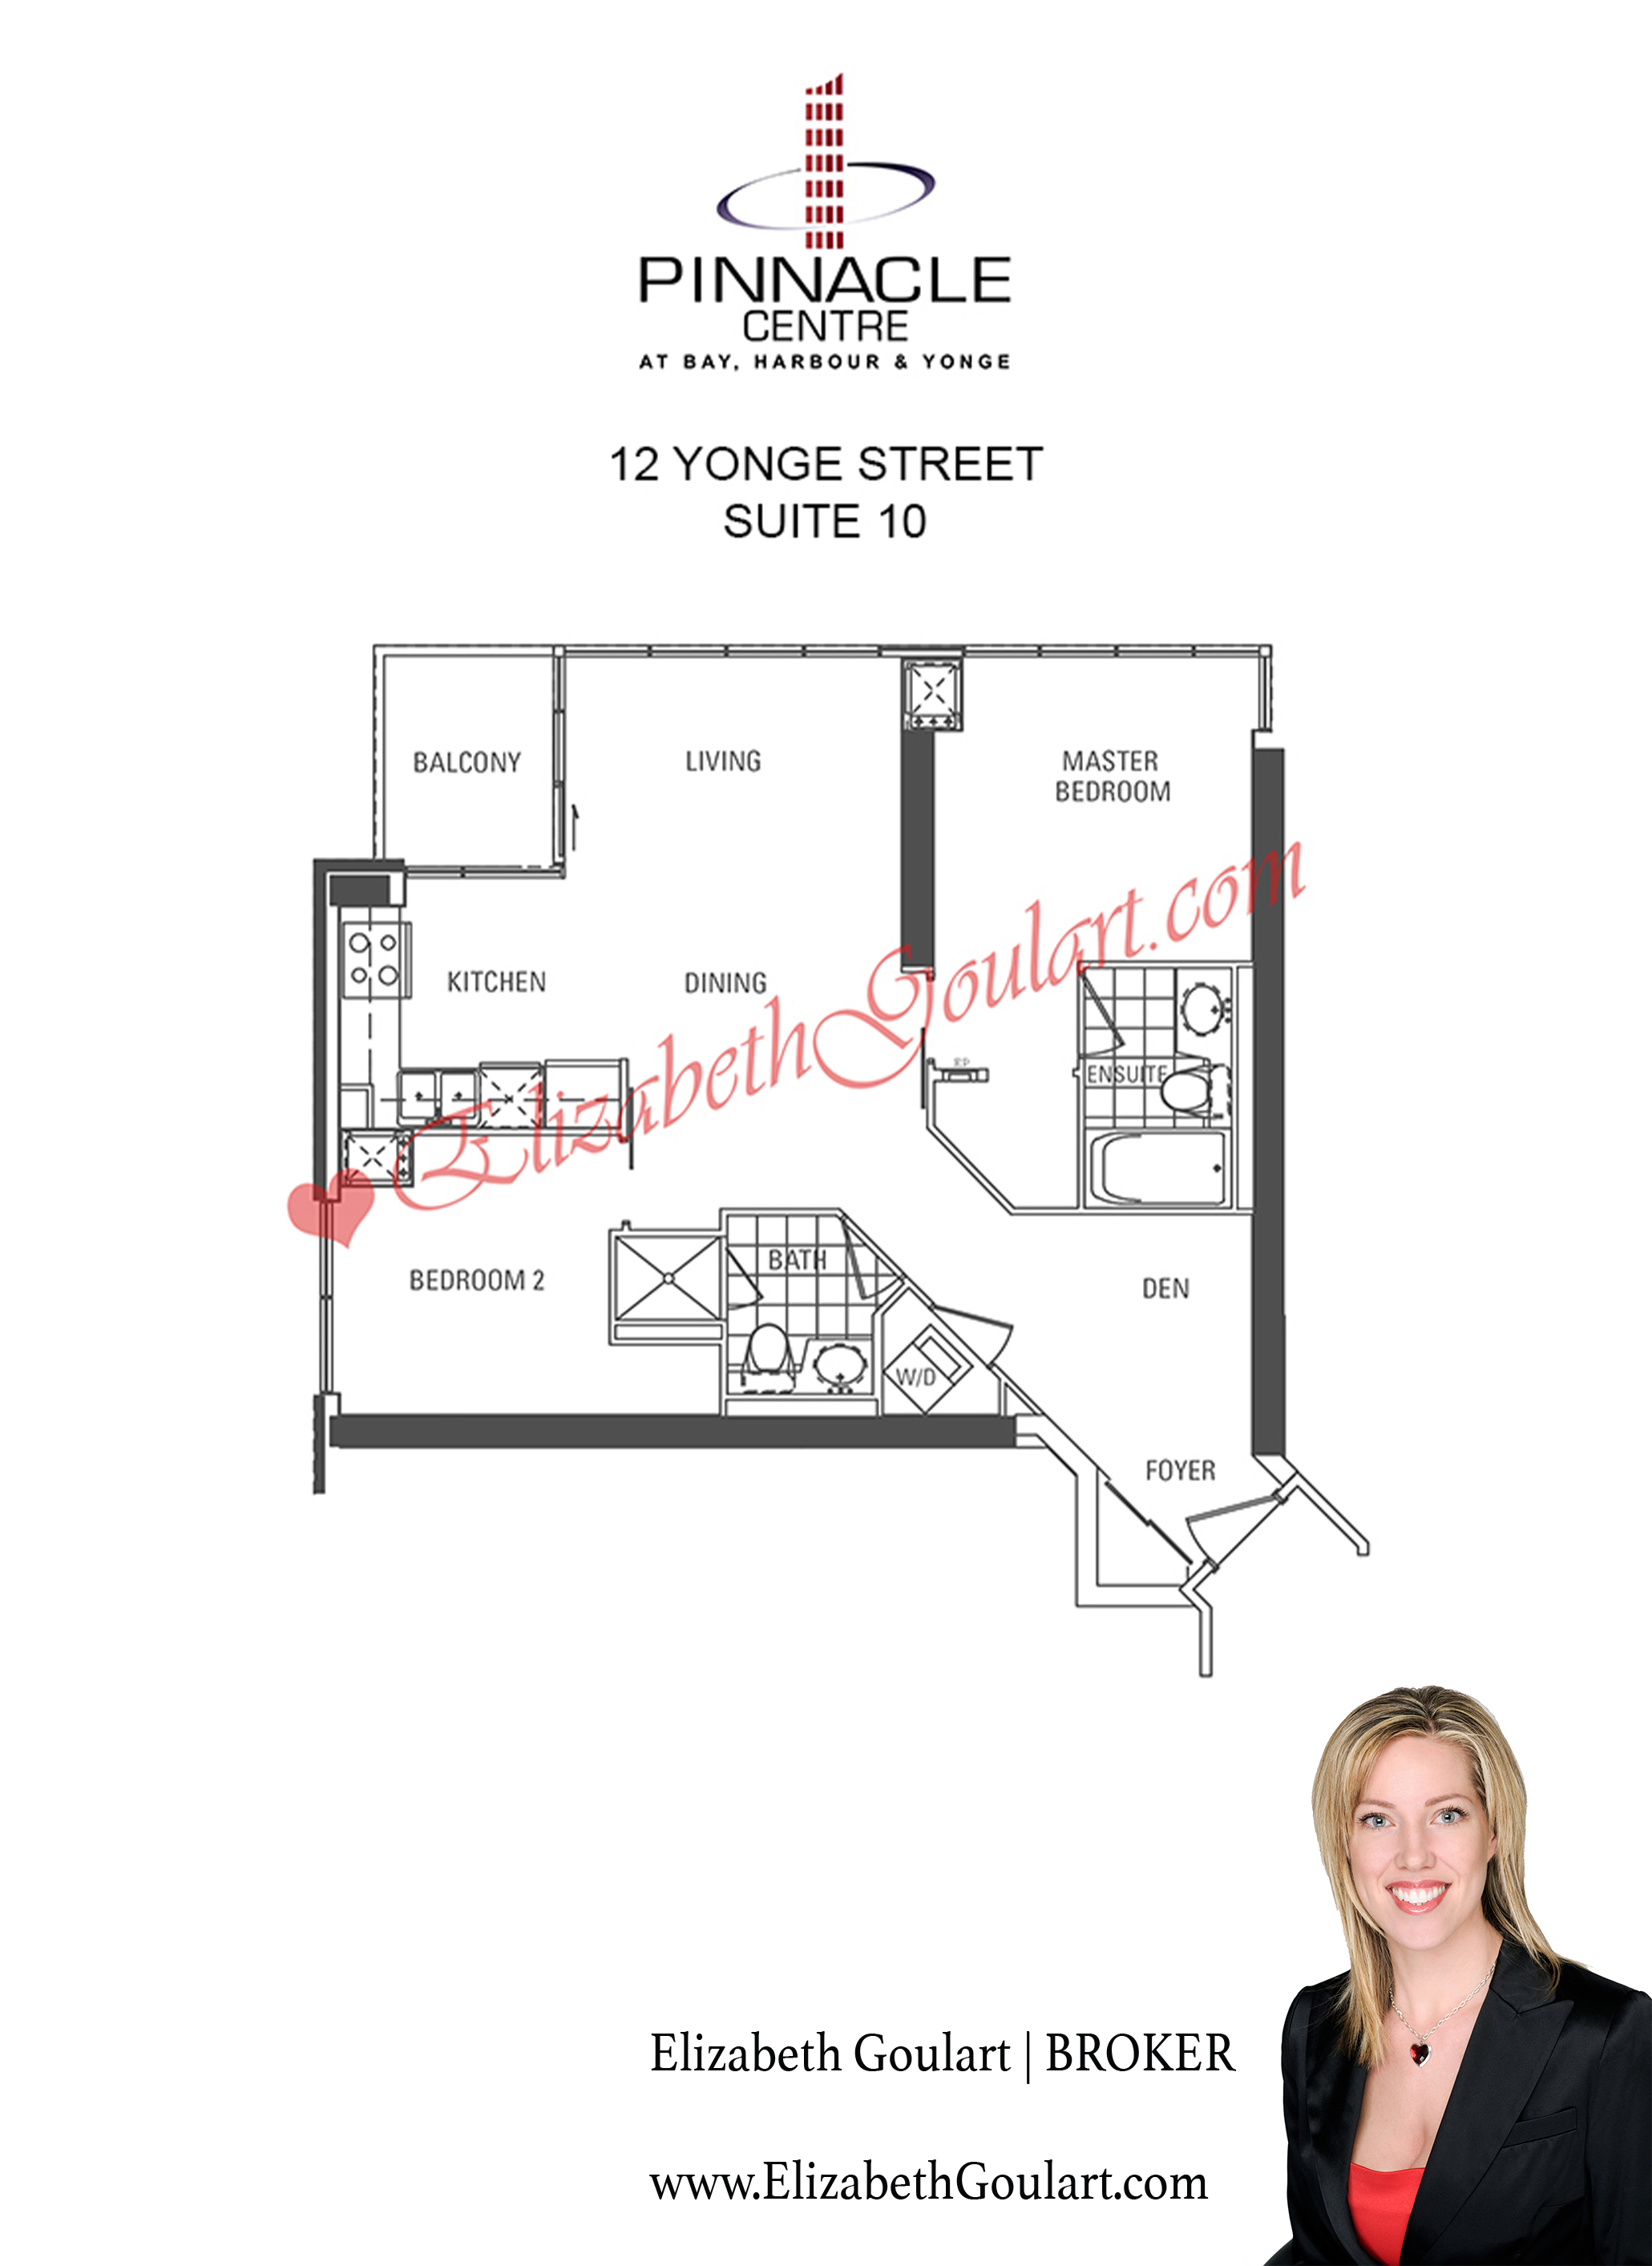 12 yonge street pinnacle centre condos floor plans